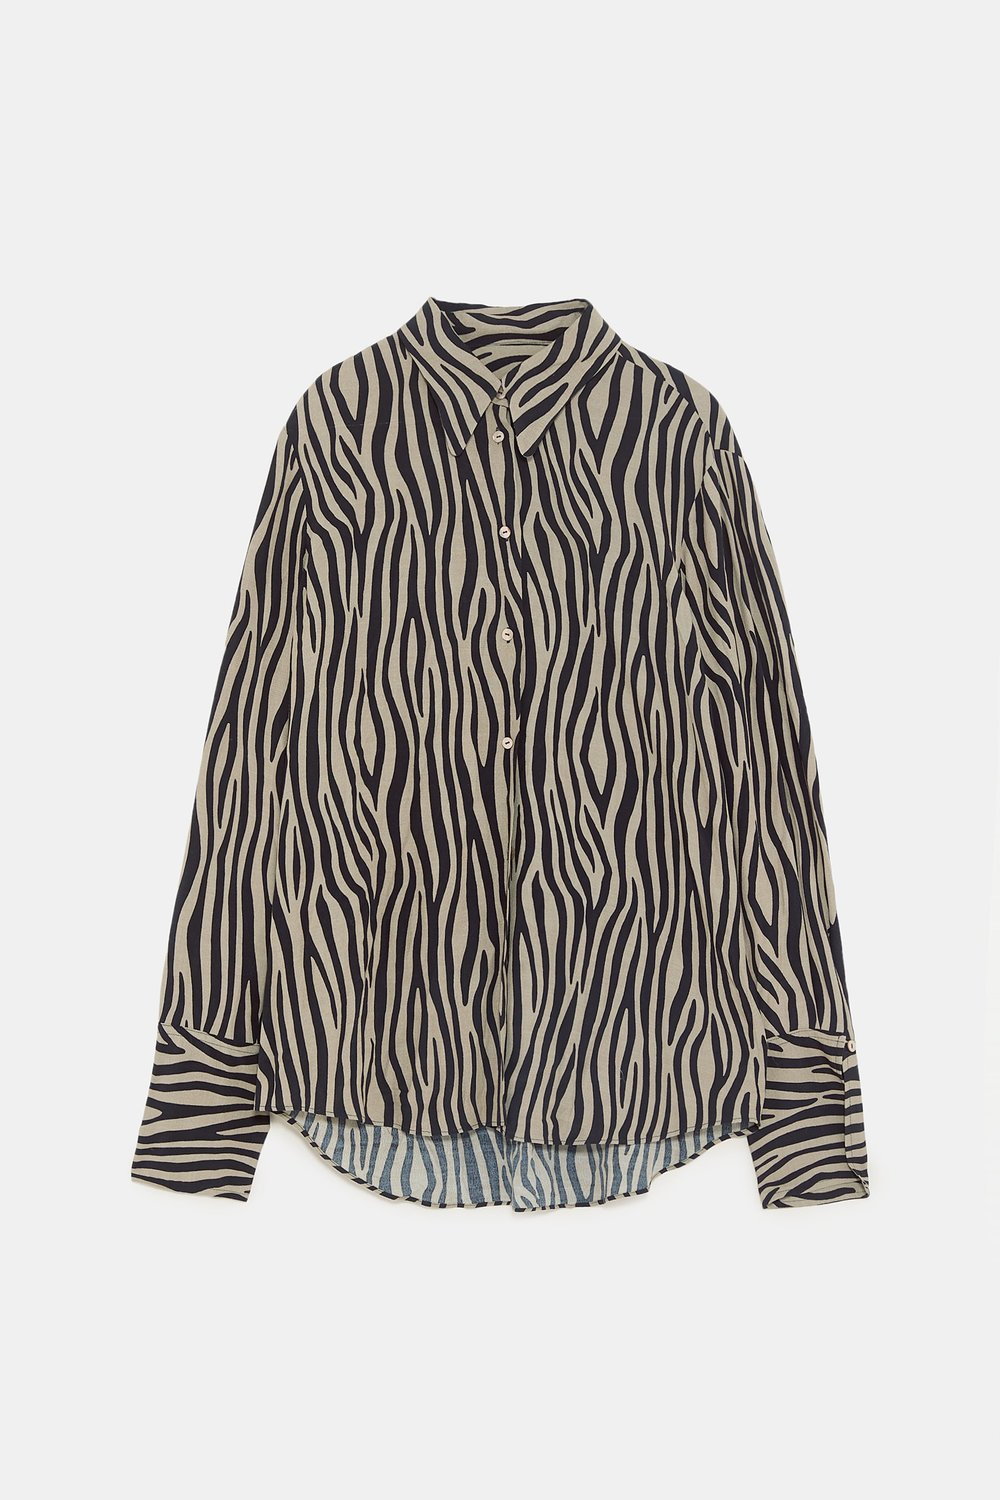 https://www.zara.com/ca/en/printed-two-tone-shirt-p08366792.html?v1=7682267&v2=1121039